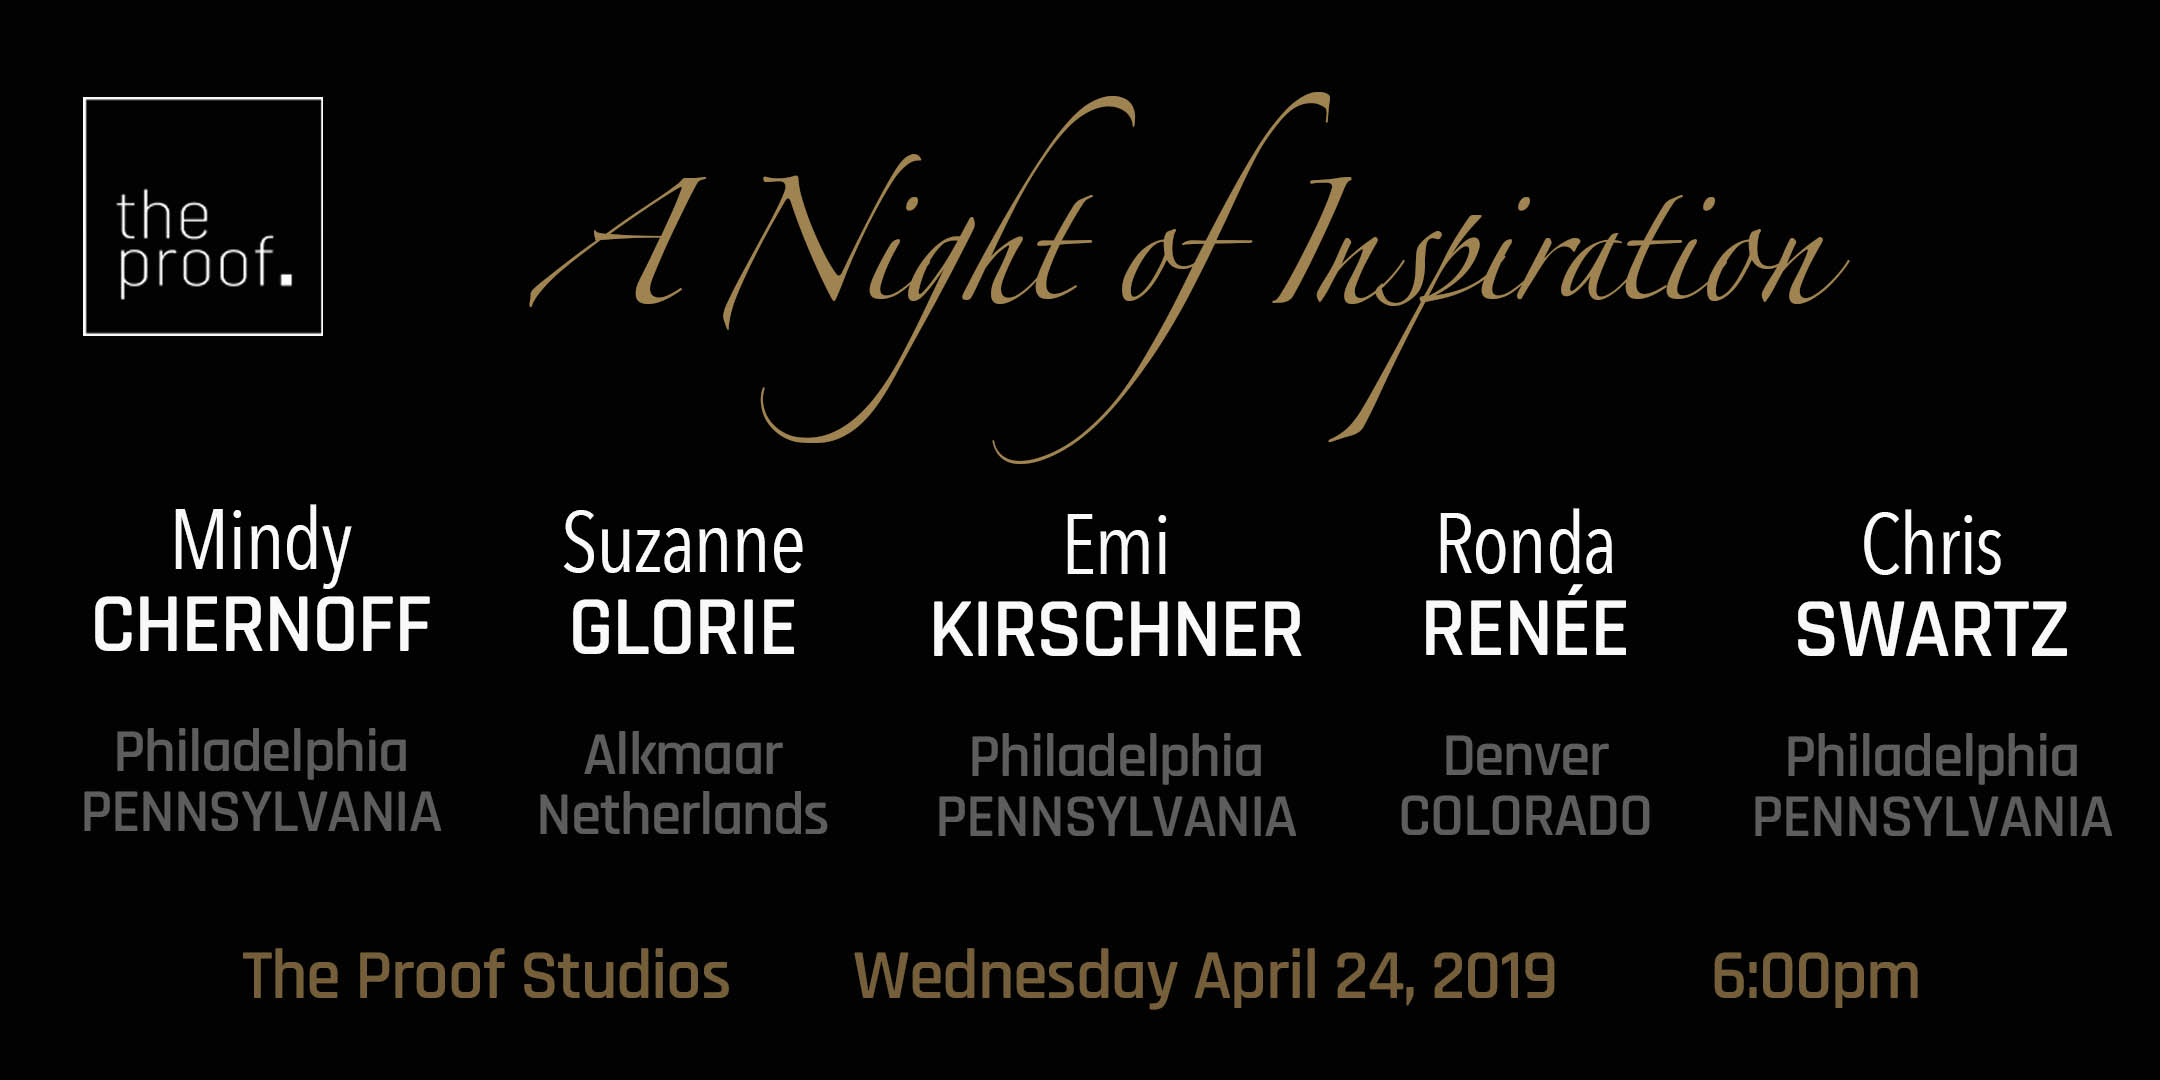 April 24, 2019 - A Night of InspirationJoin us for an evening of heart warming stories that lit the fire of entrepreneurialism among our speakers.